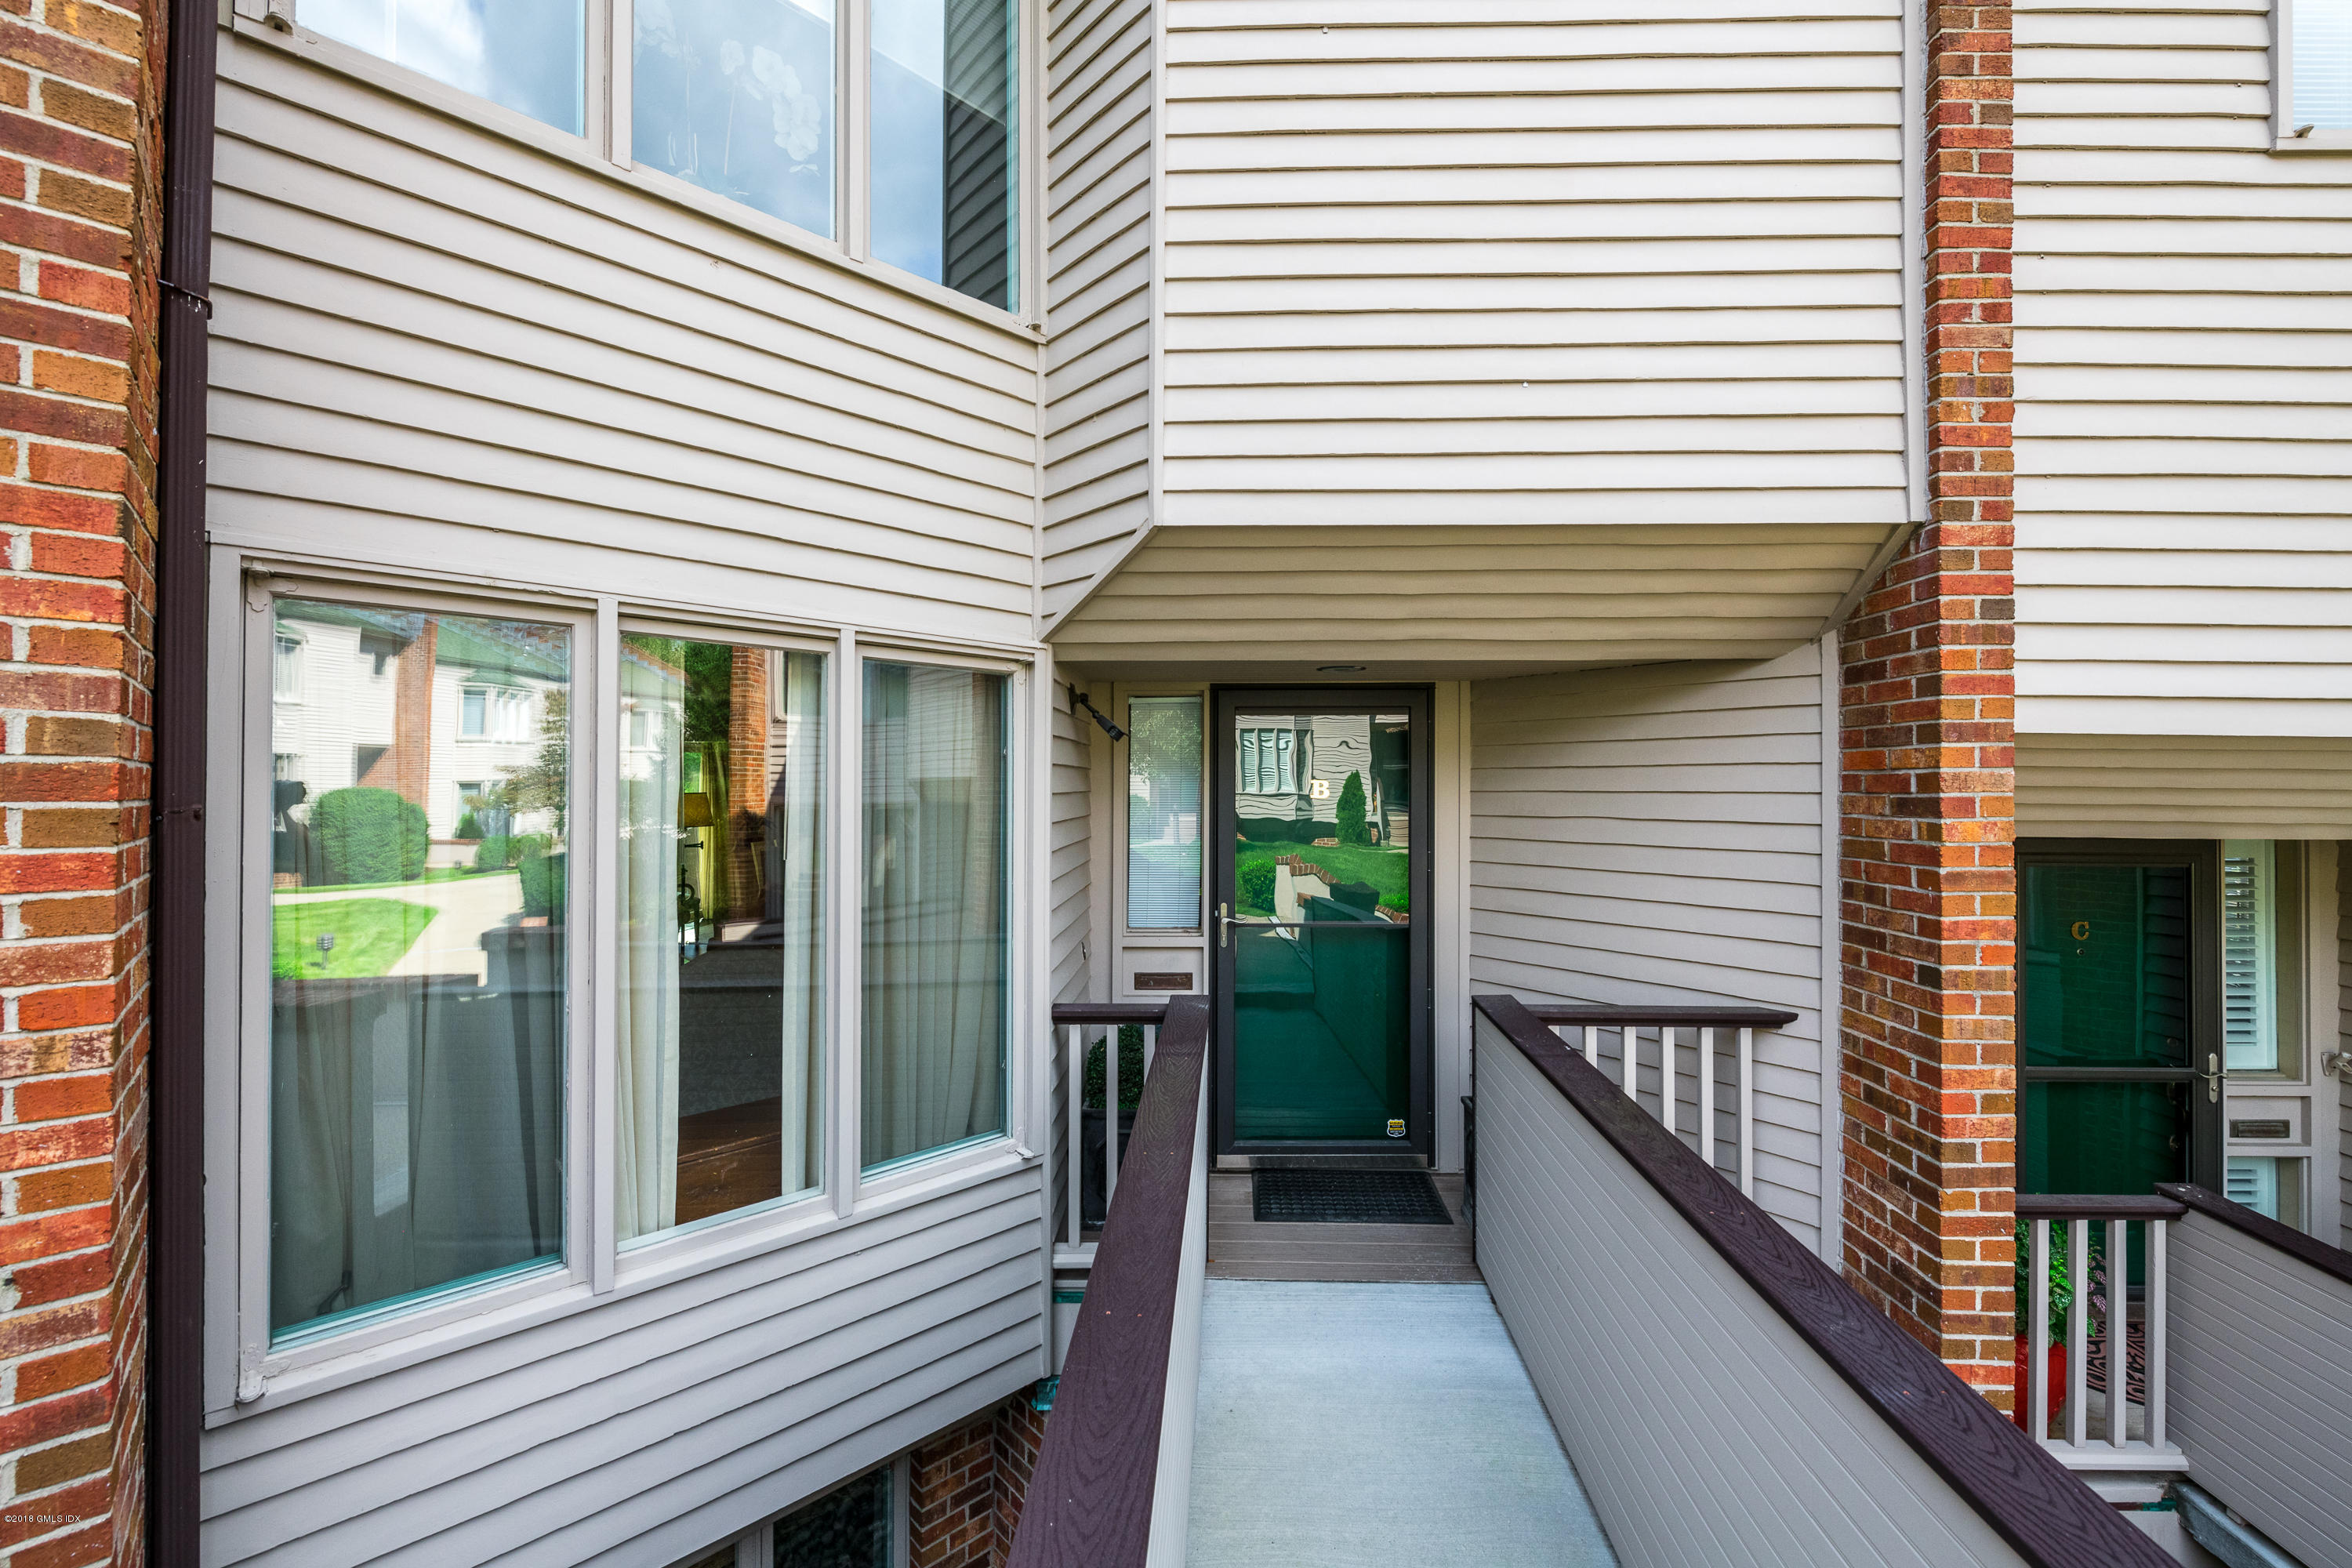 101 Lewis Street,Greenwich,Connecticut 06830,3 Bedrooms Bedrooms,2 BathroomsBathrooms,Condominium,Lewis,104479